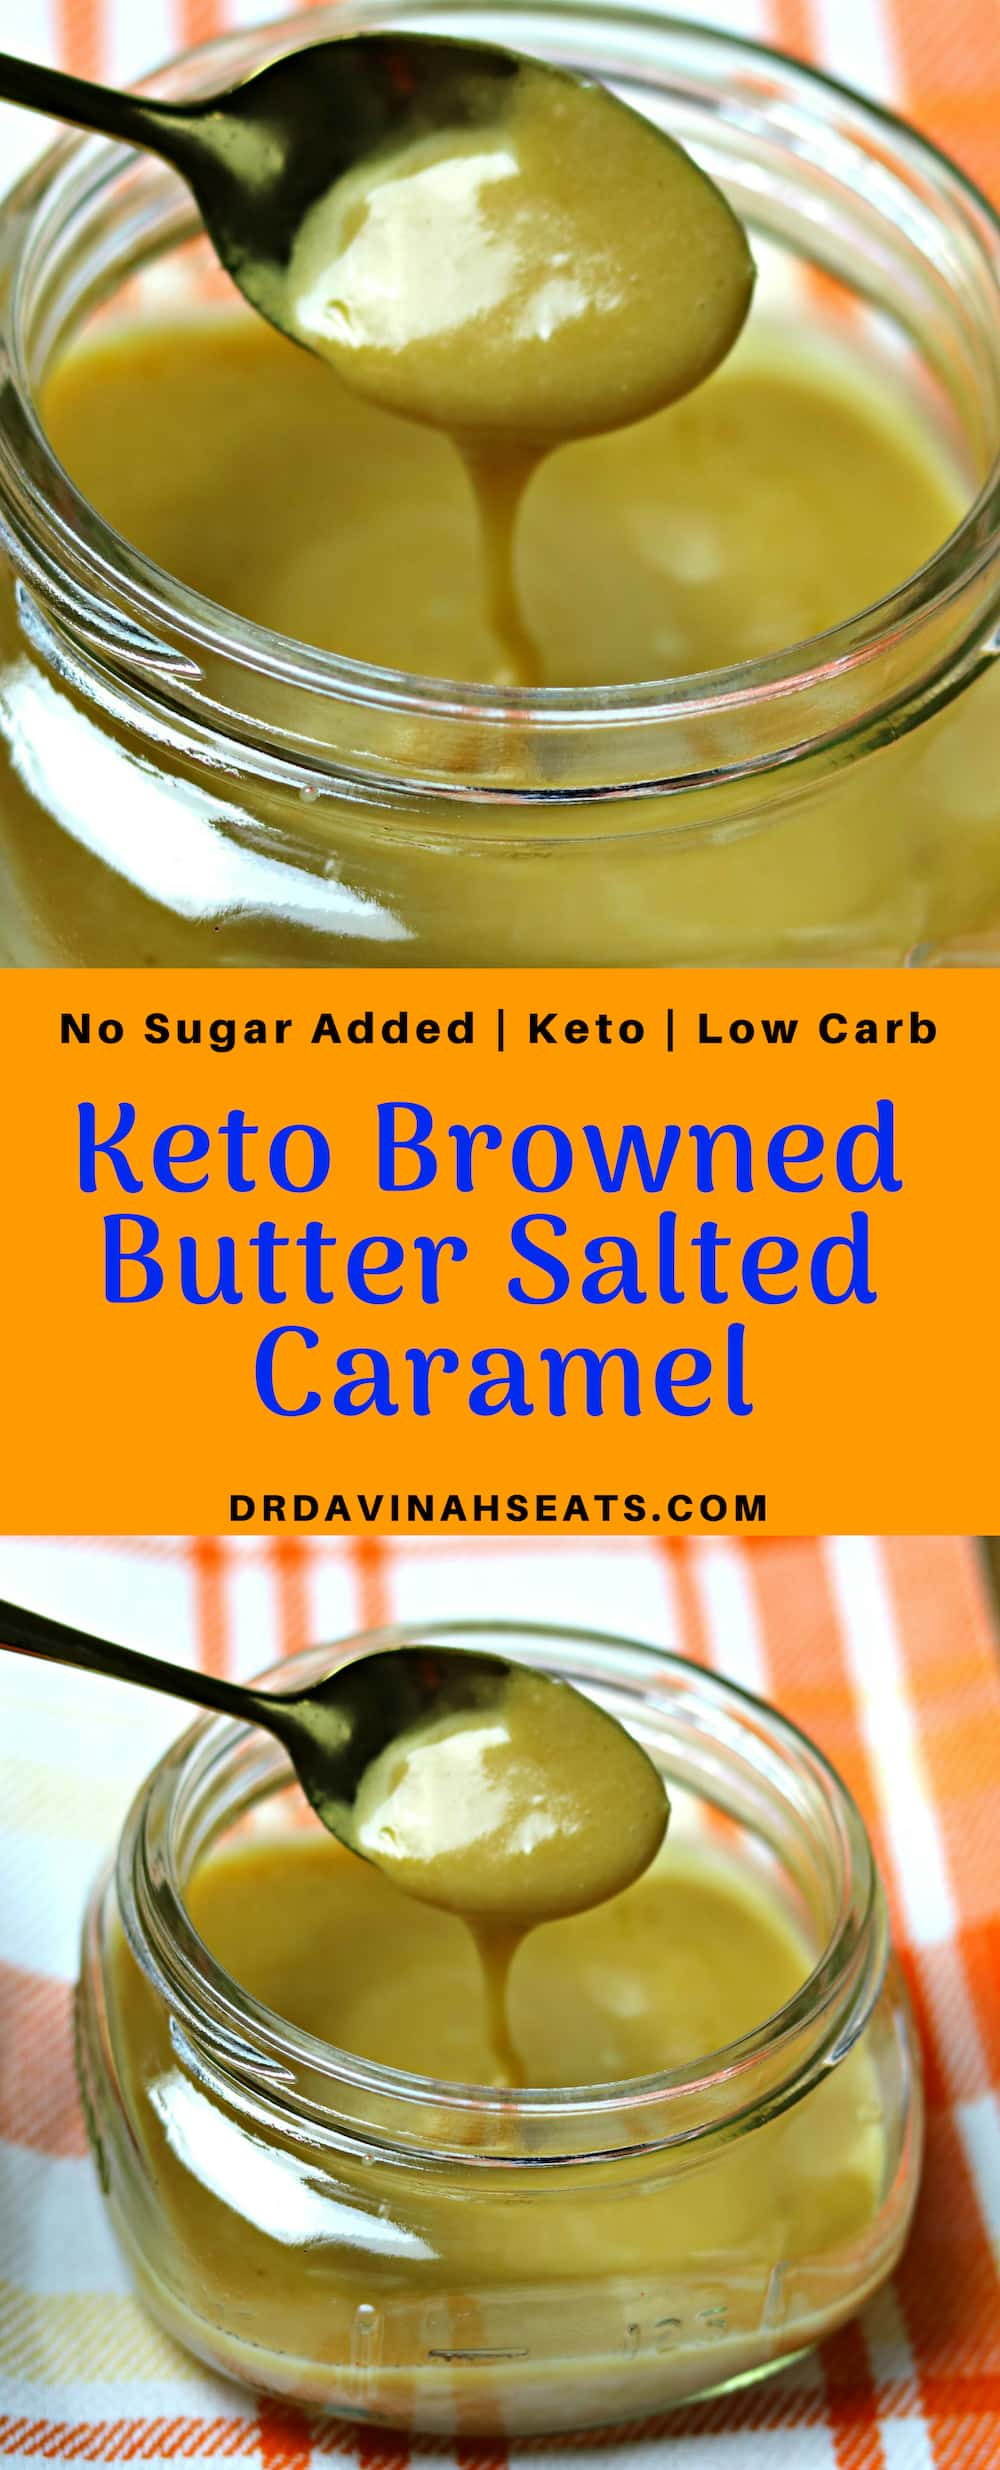 A no sugar added recipe for salted caramel that features browned butter, keto brown sugar, pink sea salt, and heavy cream. #keto #lowcarb #noaddedsugar #ketocaramel #caramel